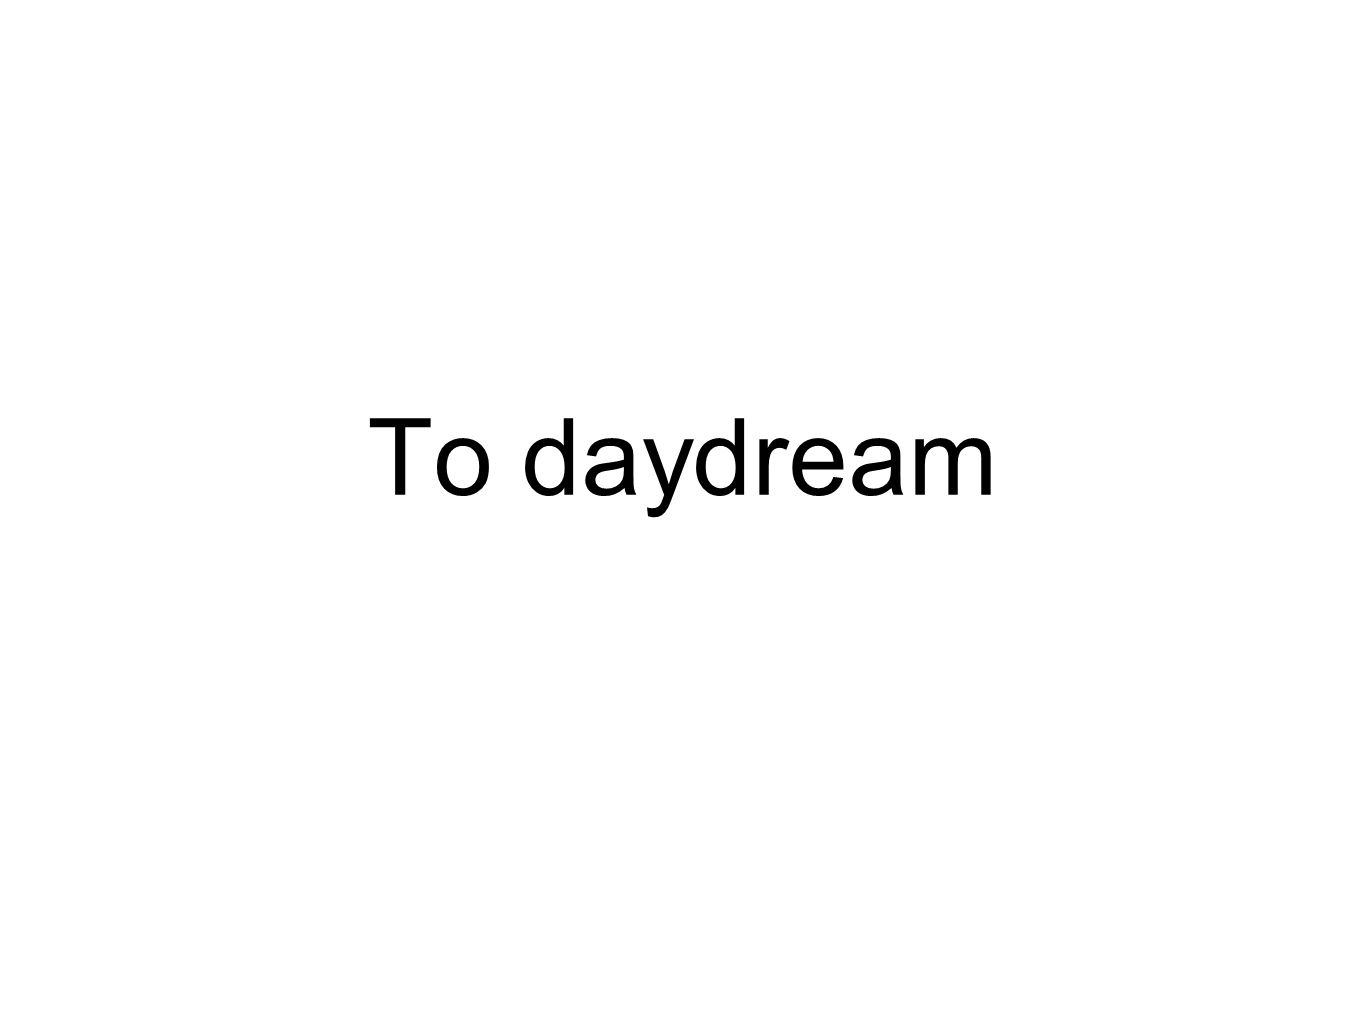 To daydream